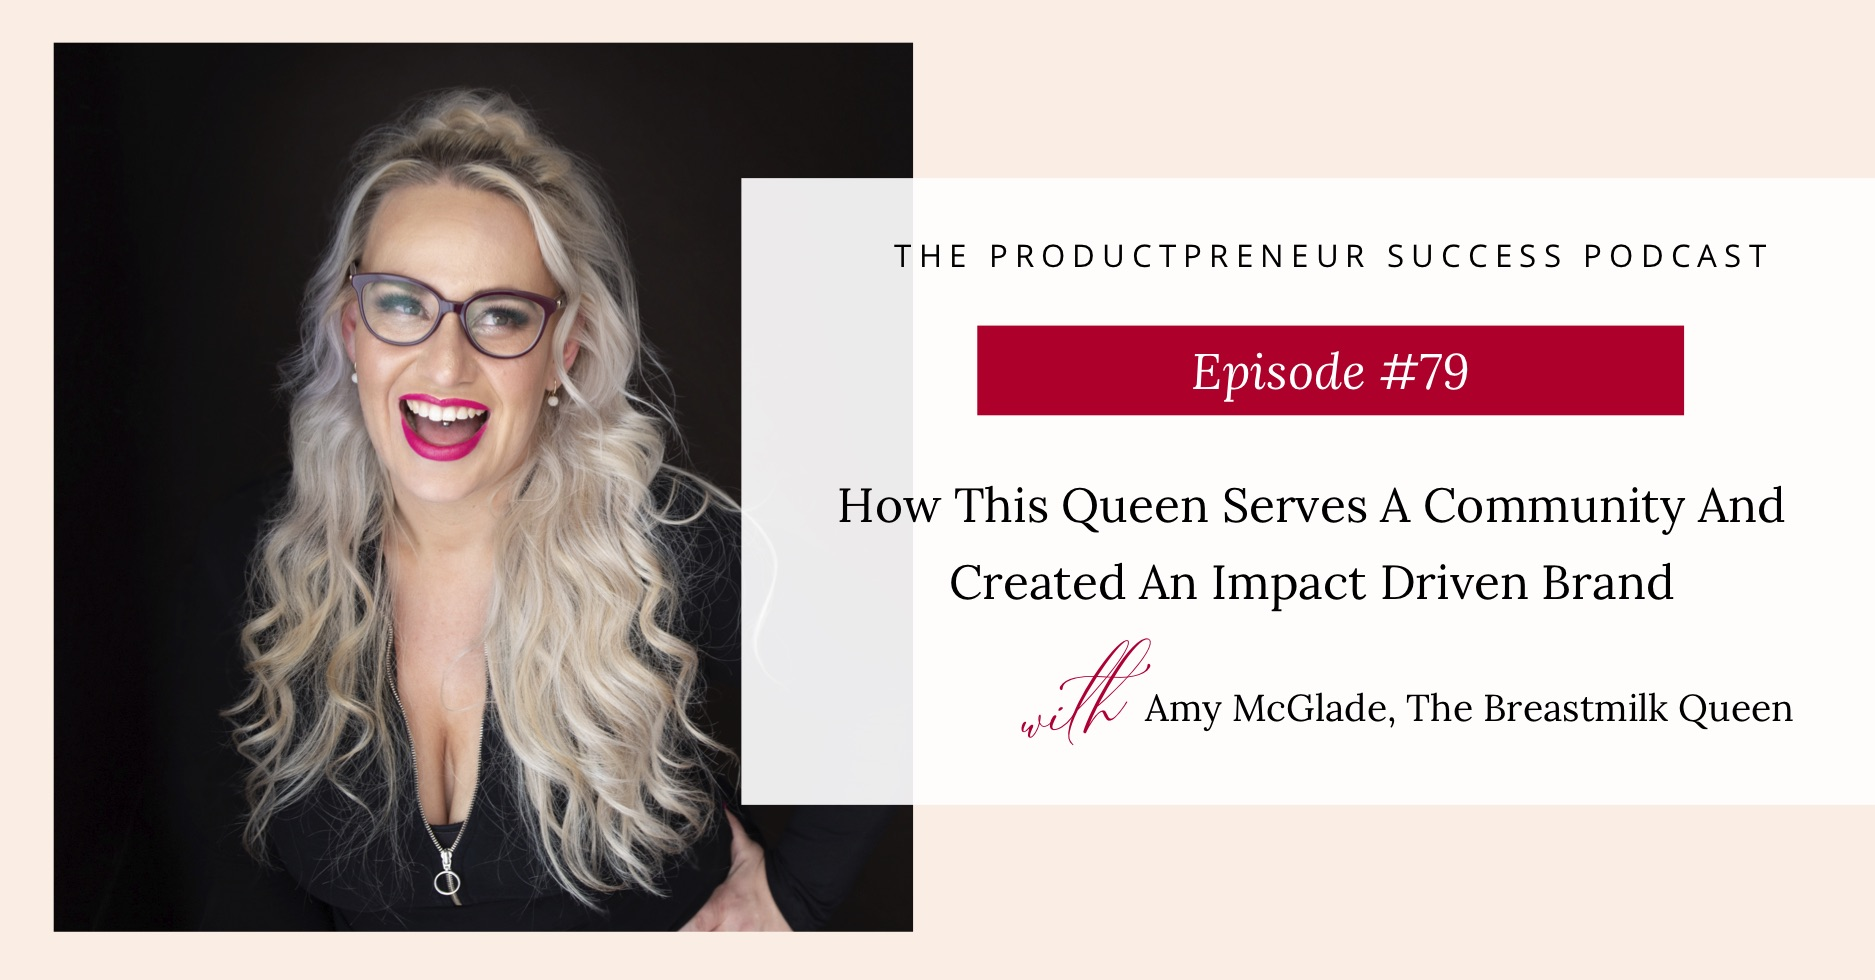 Interview with Amy McGlade from The Breastmilk Queen